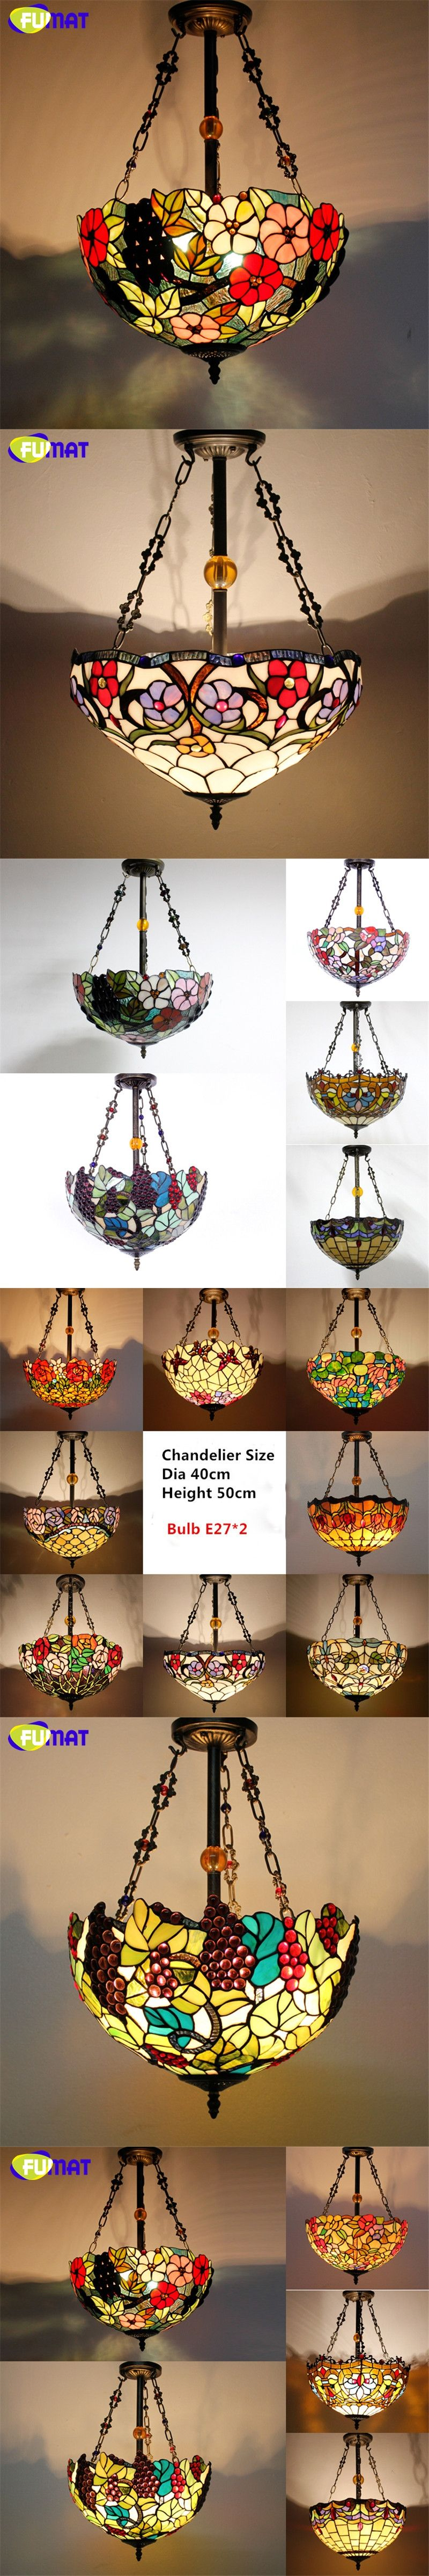 Fumat stained glass pendant lamp antique